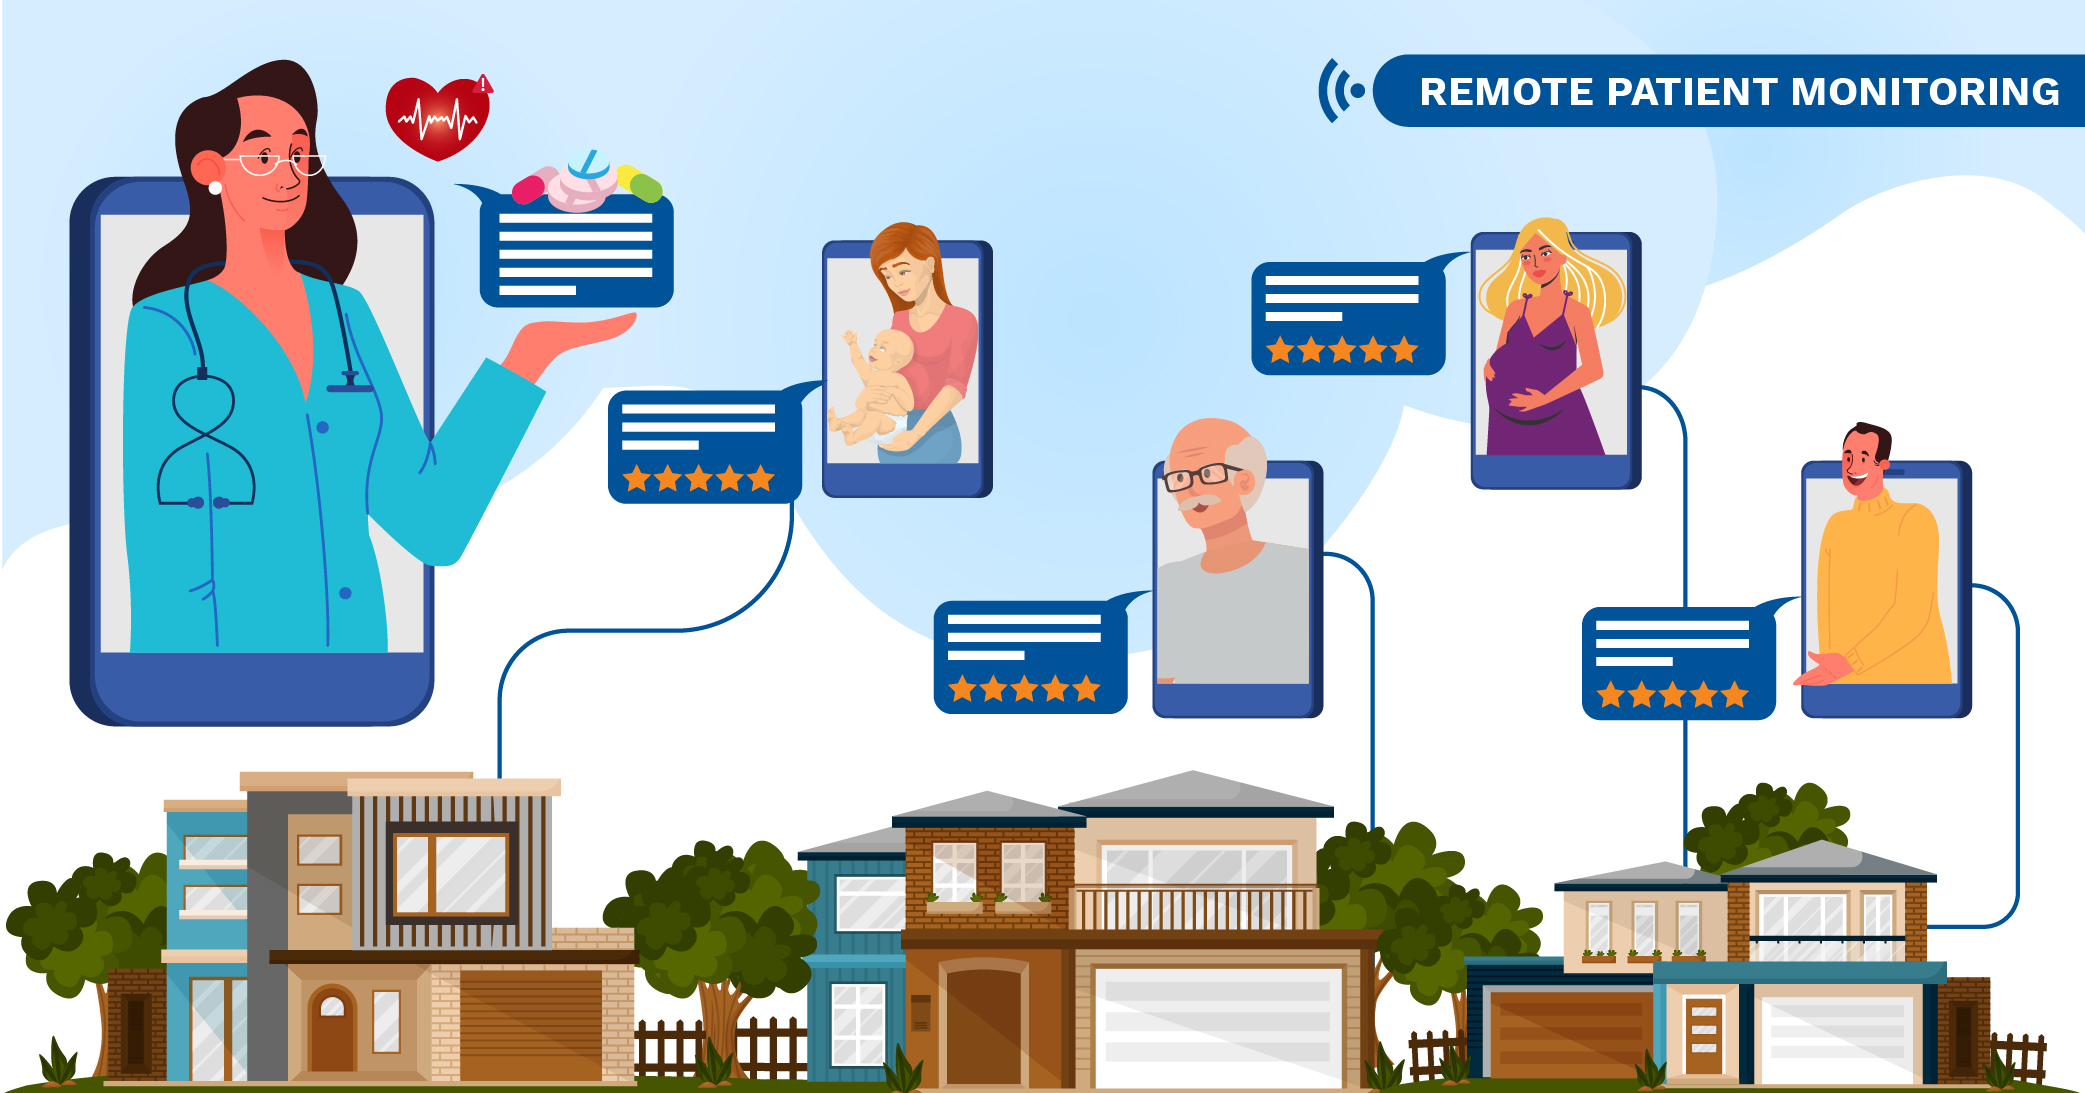 Remote patient monitoring - Infographic